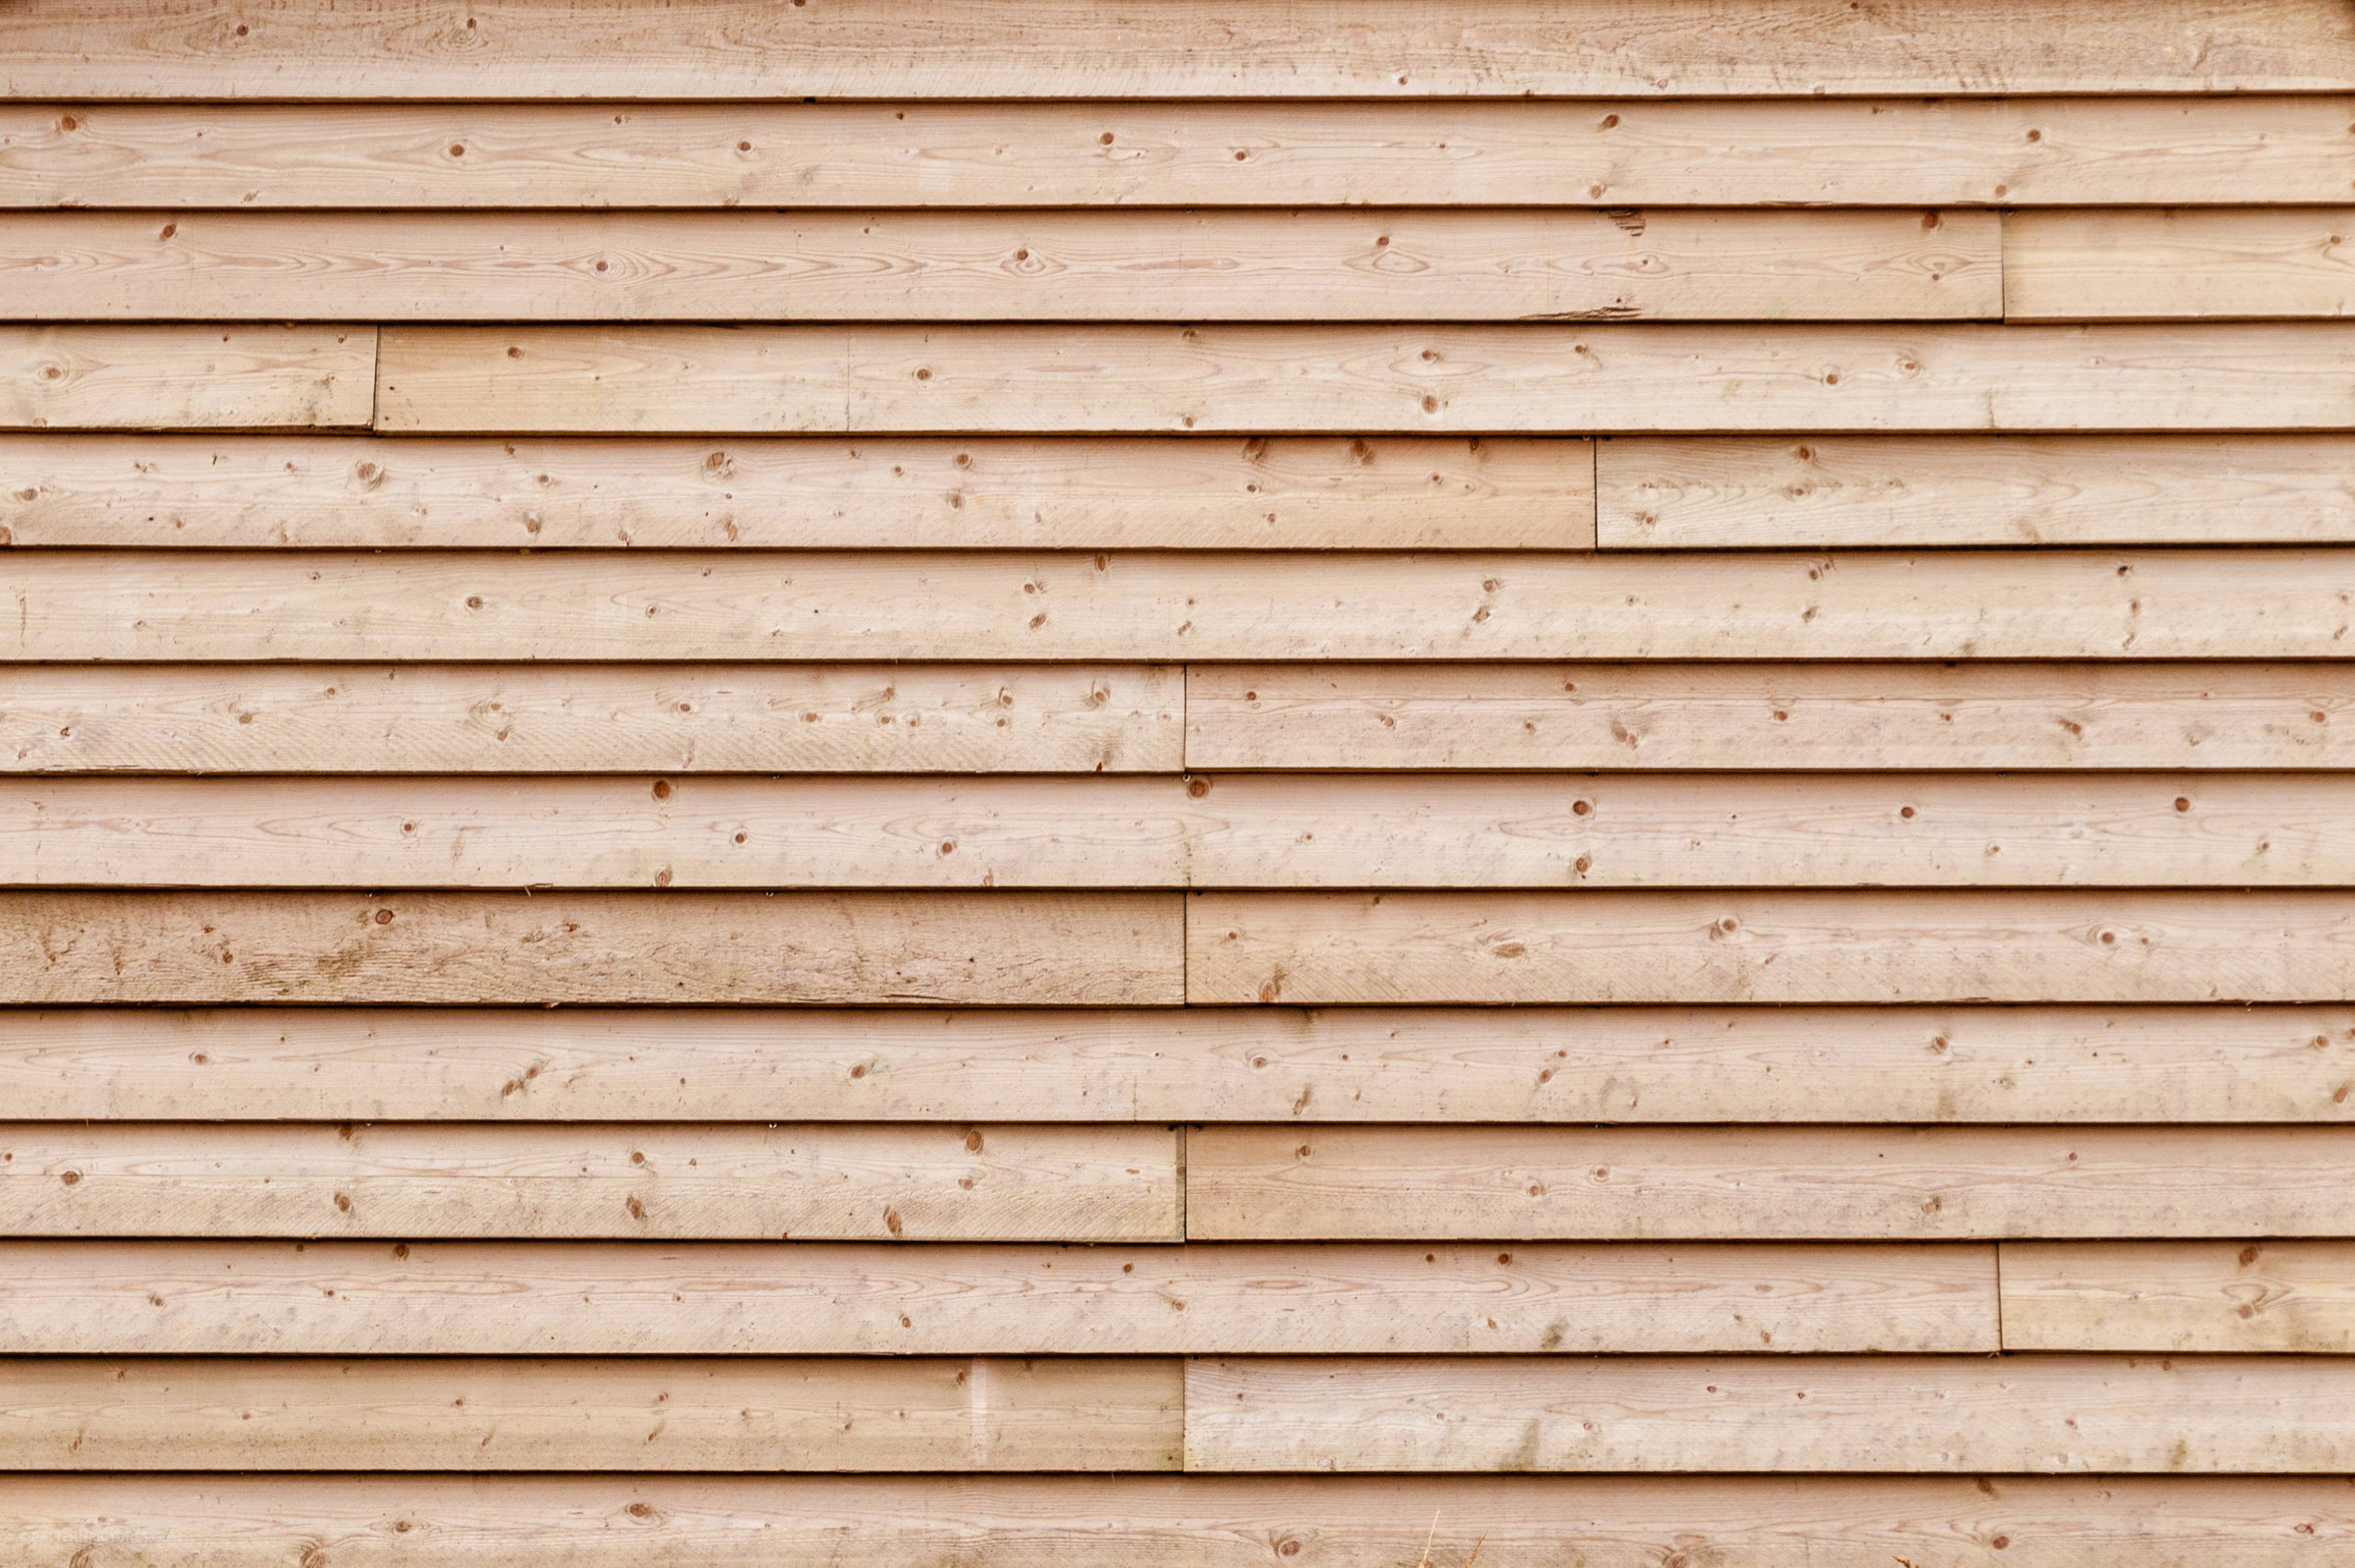 Free stock photo of wood timber oak lumber